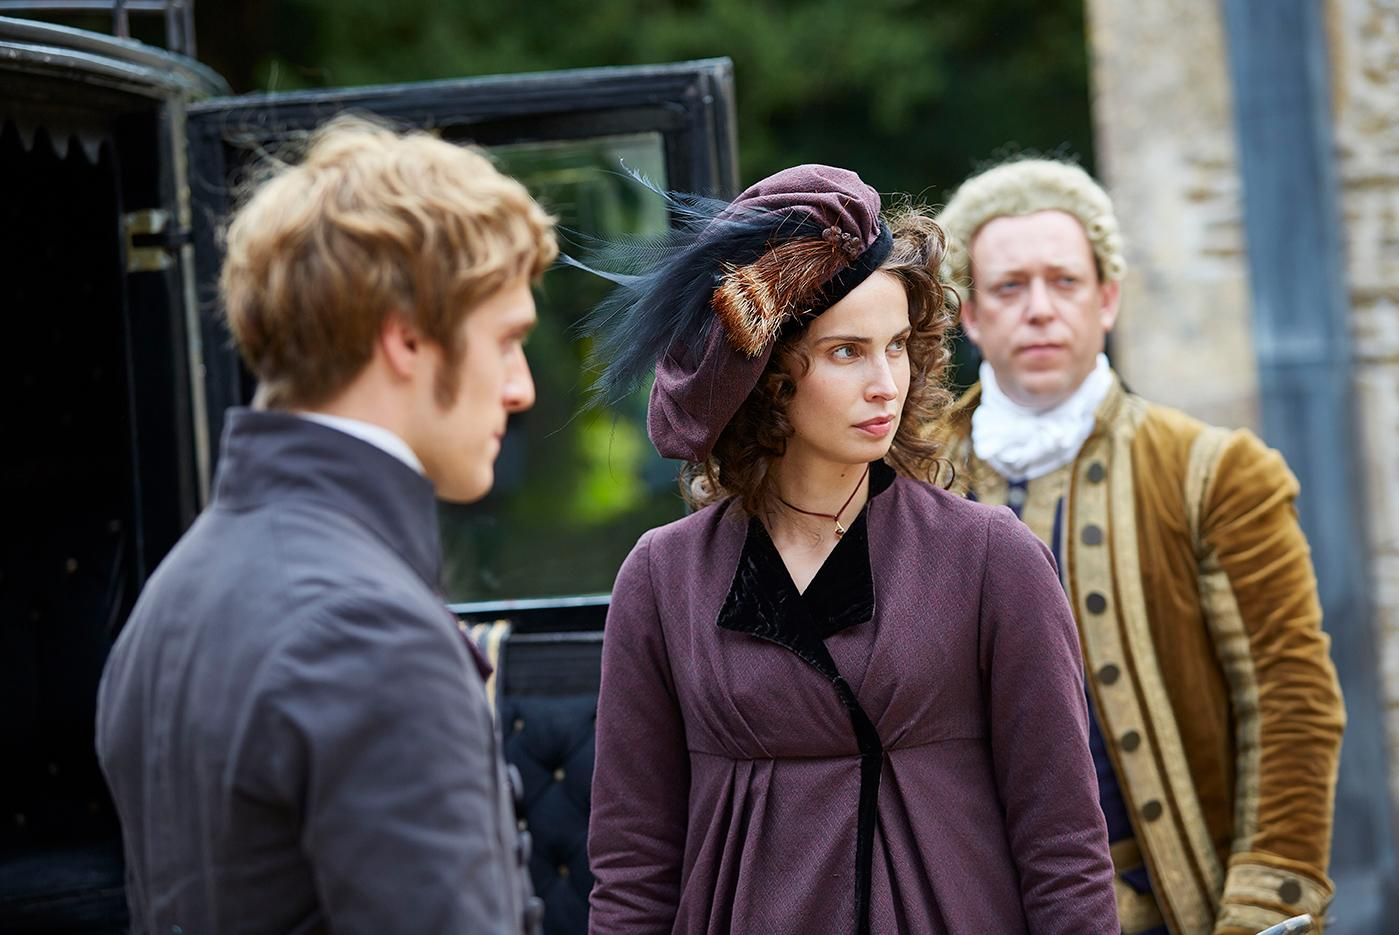 Jack Farthing as George and Heida Reed as Elizabeth in Poldark. Photo: Mammoth Screen for BBC and MASTERPIECE